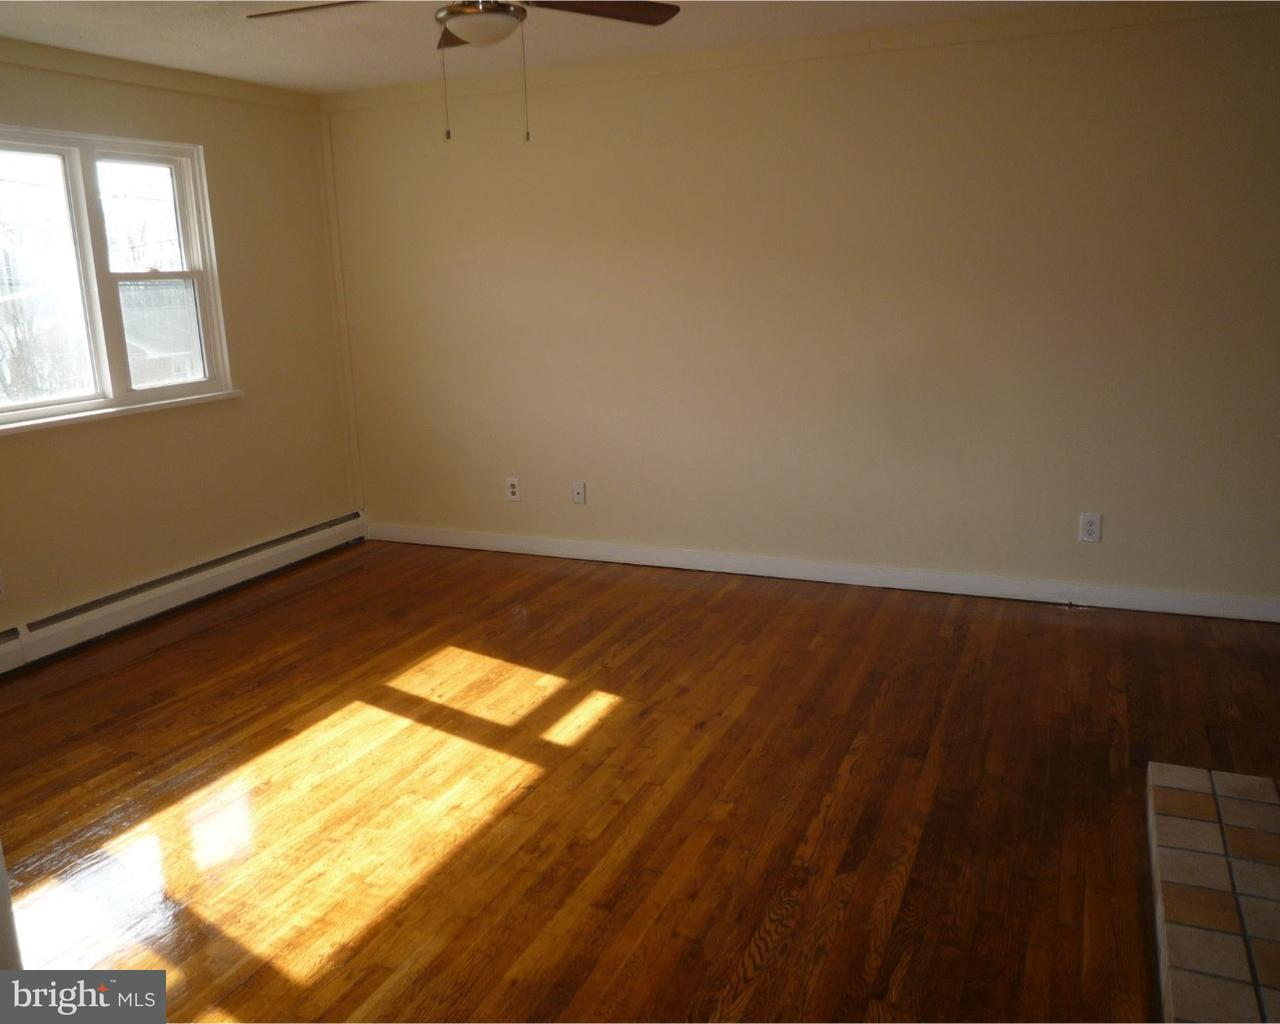 323 S RICHMOND ST, FLEETWOOD - Listed at $199,900, FLEETWOOD